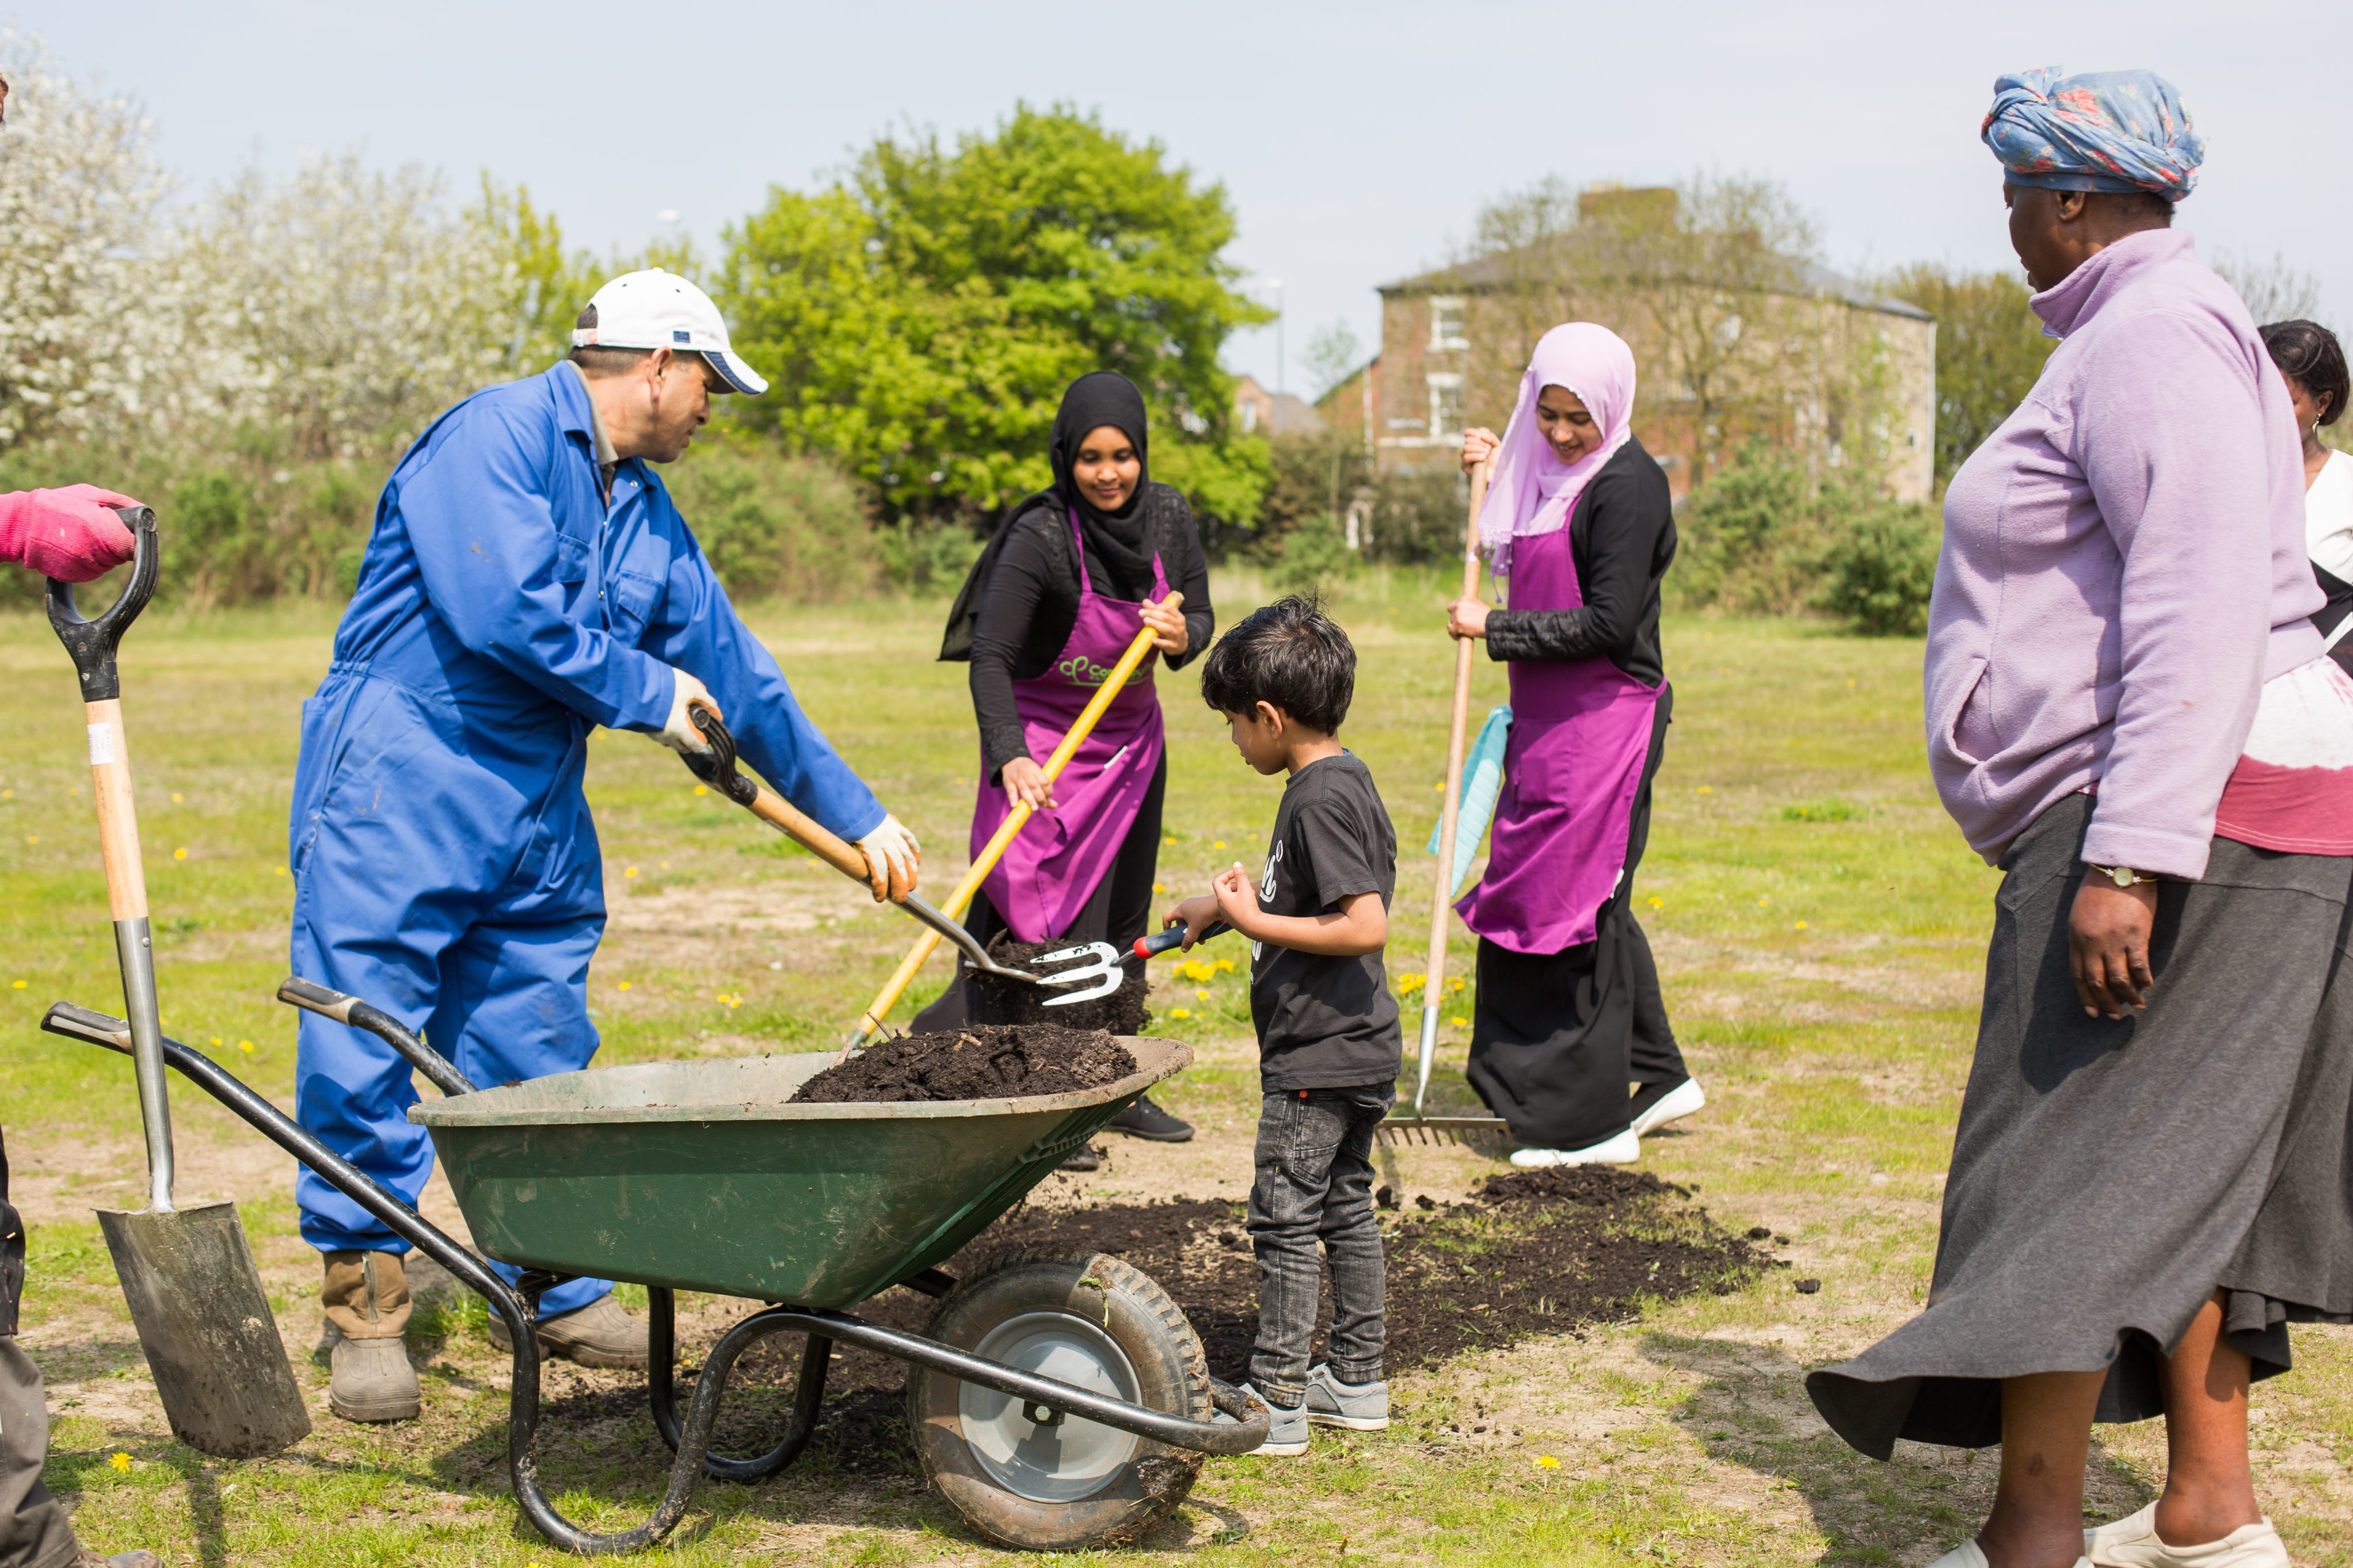 Women and children take part in an outreach project,putting soil into a wheelbarrow